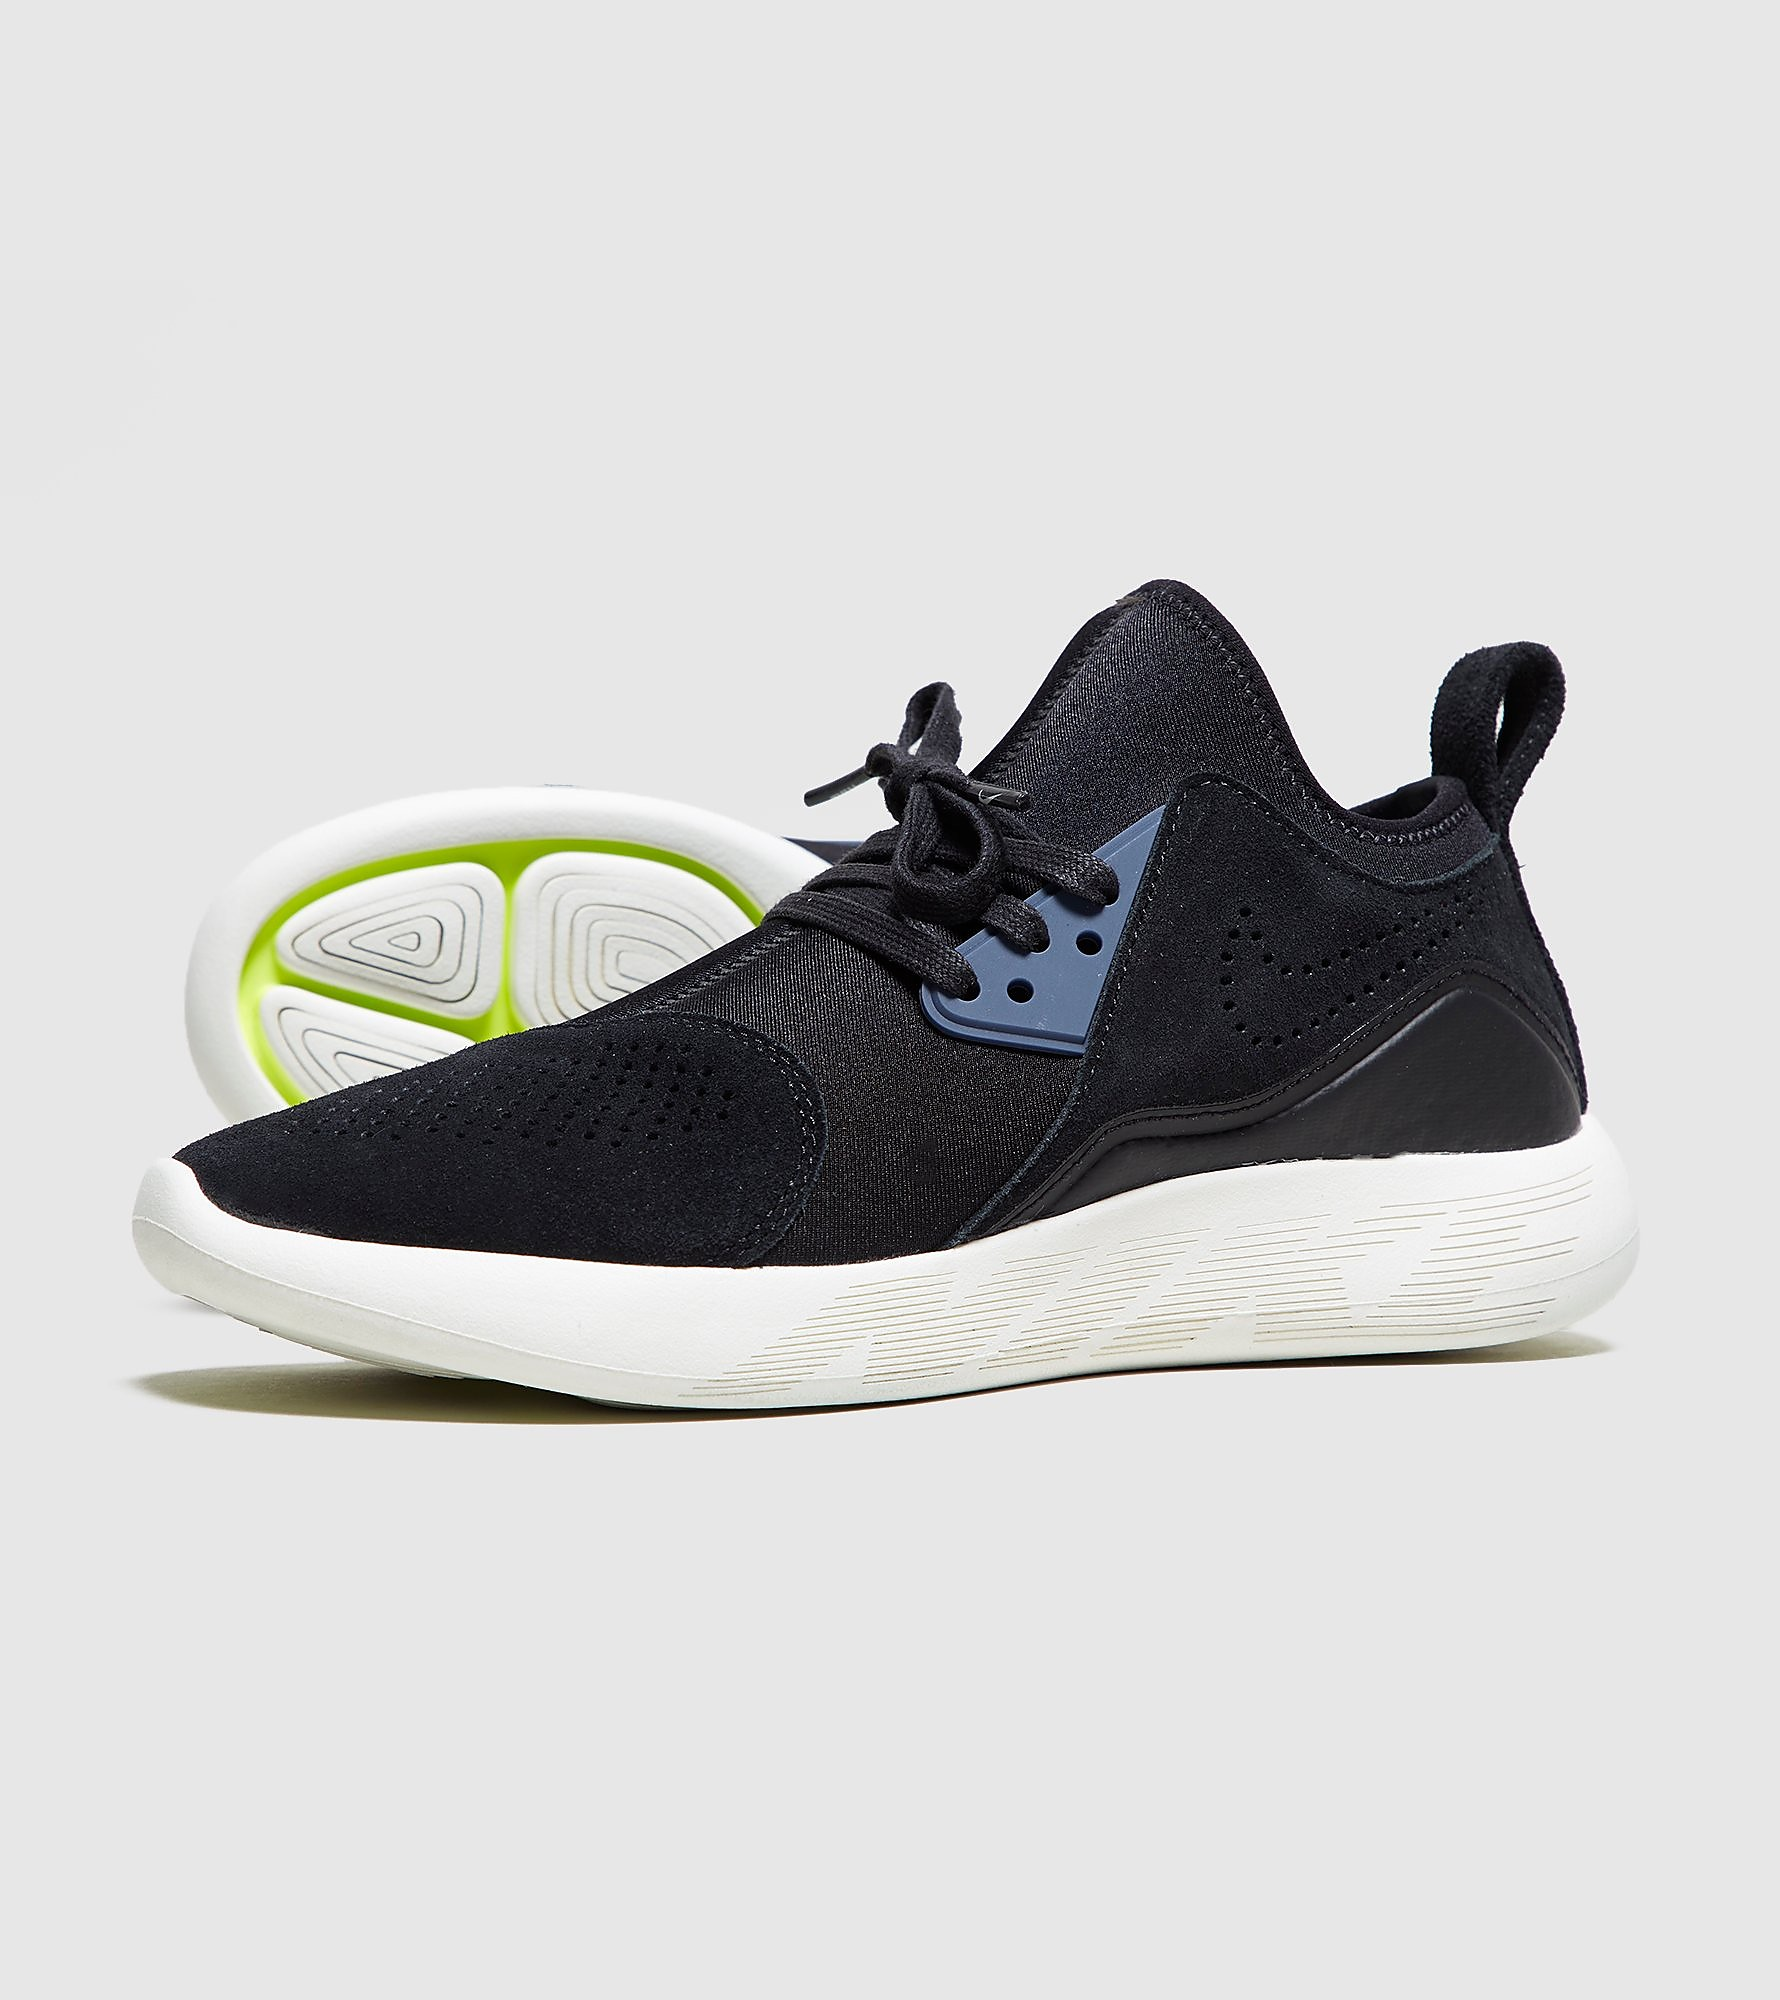 Nike Lunarcharge Premium Women's